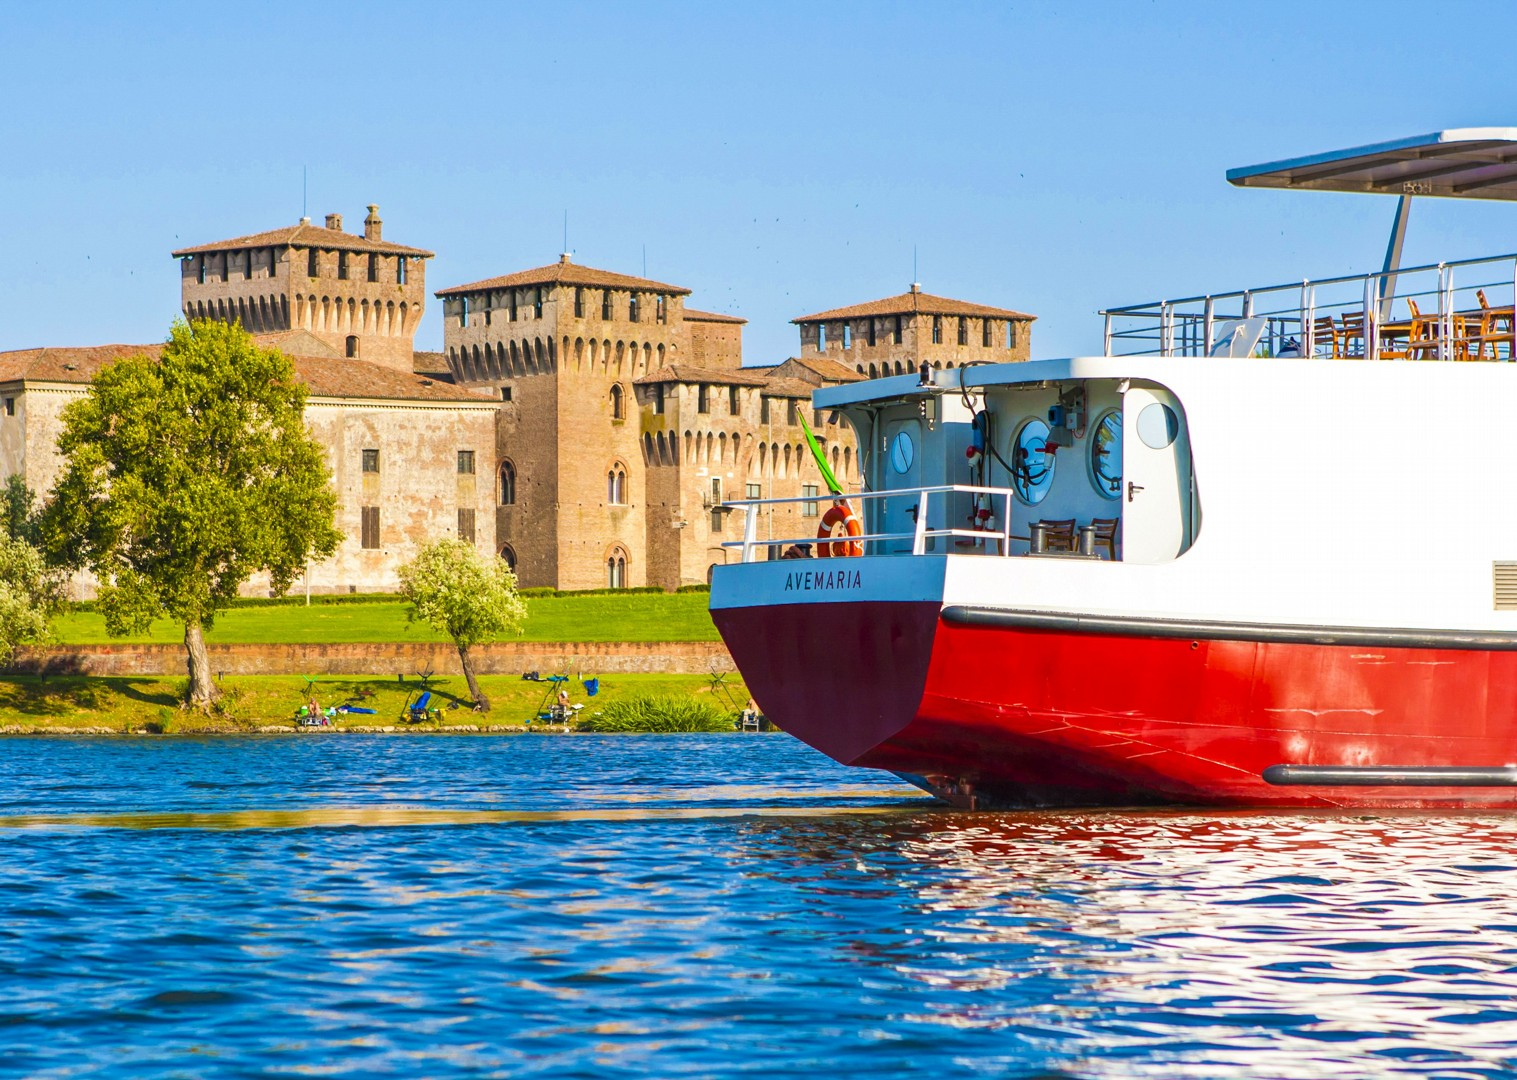 explore-mantova-ave-maria-boat-and-bike-cruise-skedaddle-fun-culture.jpg - Italy - Venetian Waterways (Mantova to Venice) - Bike and Barge Holiday - Leisure Cycling